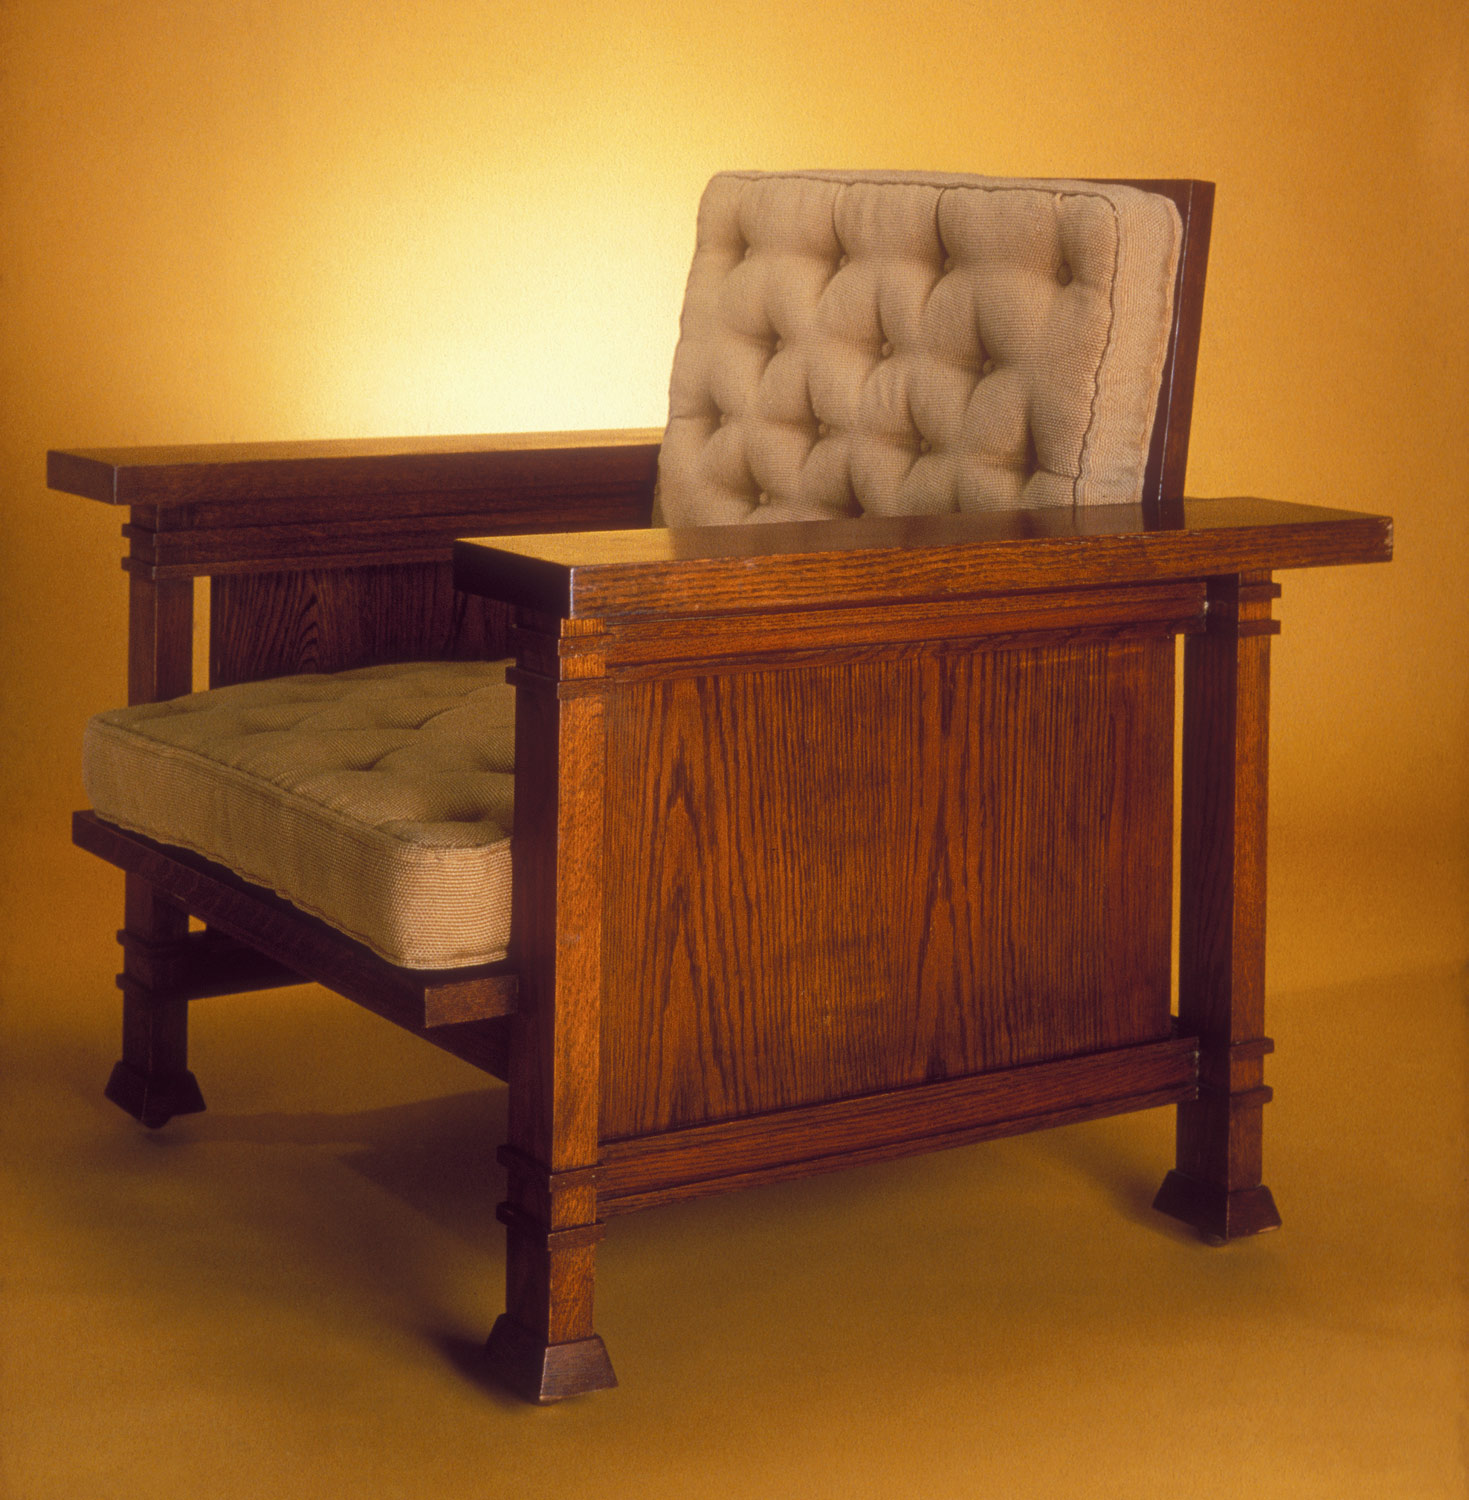 Frank Lloyd Wright Chairs Armchair Frank Lloyd Wright 1972 60 4 Work Of Art